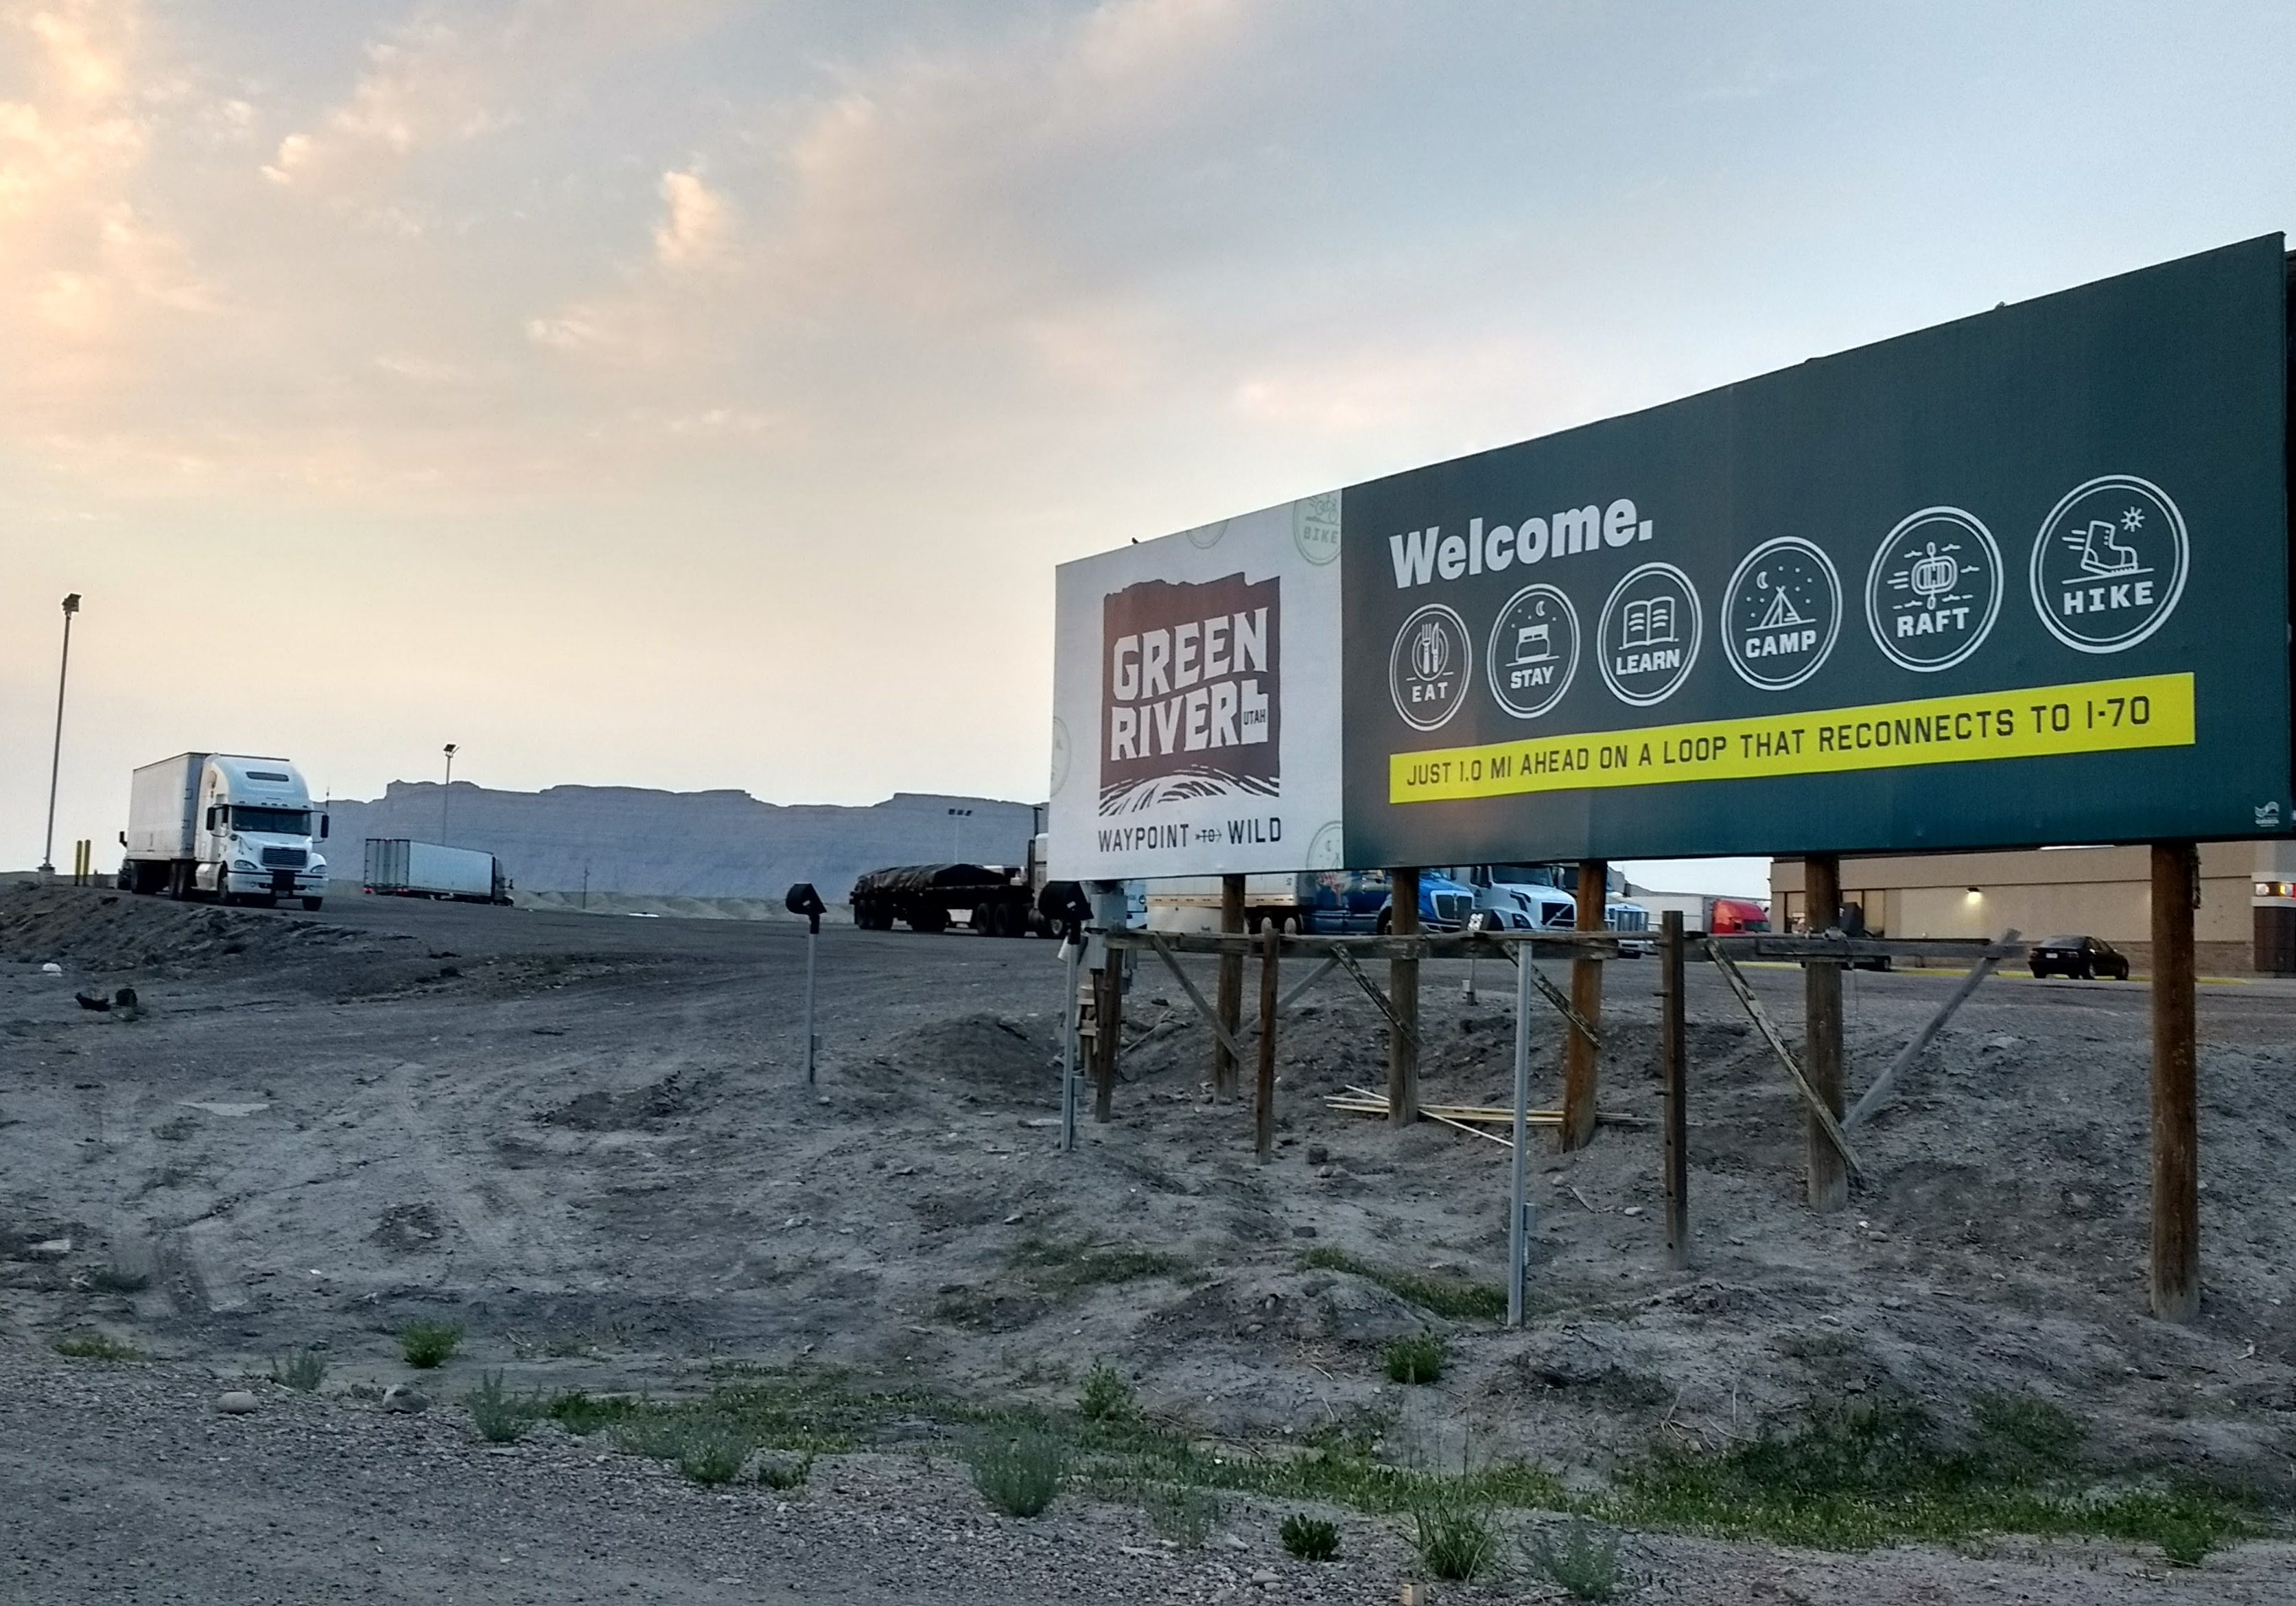 HUB also created new billboards for the interstate and the west exit to attract travellers to the heart of town